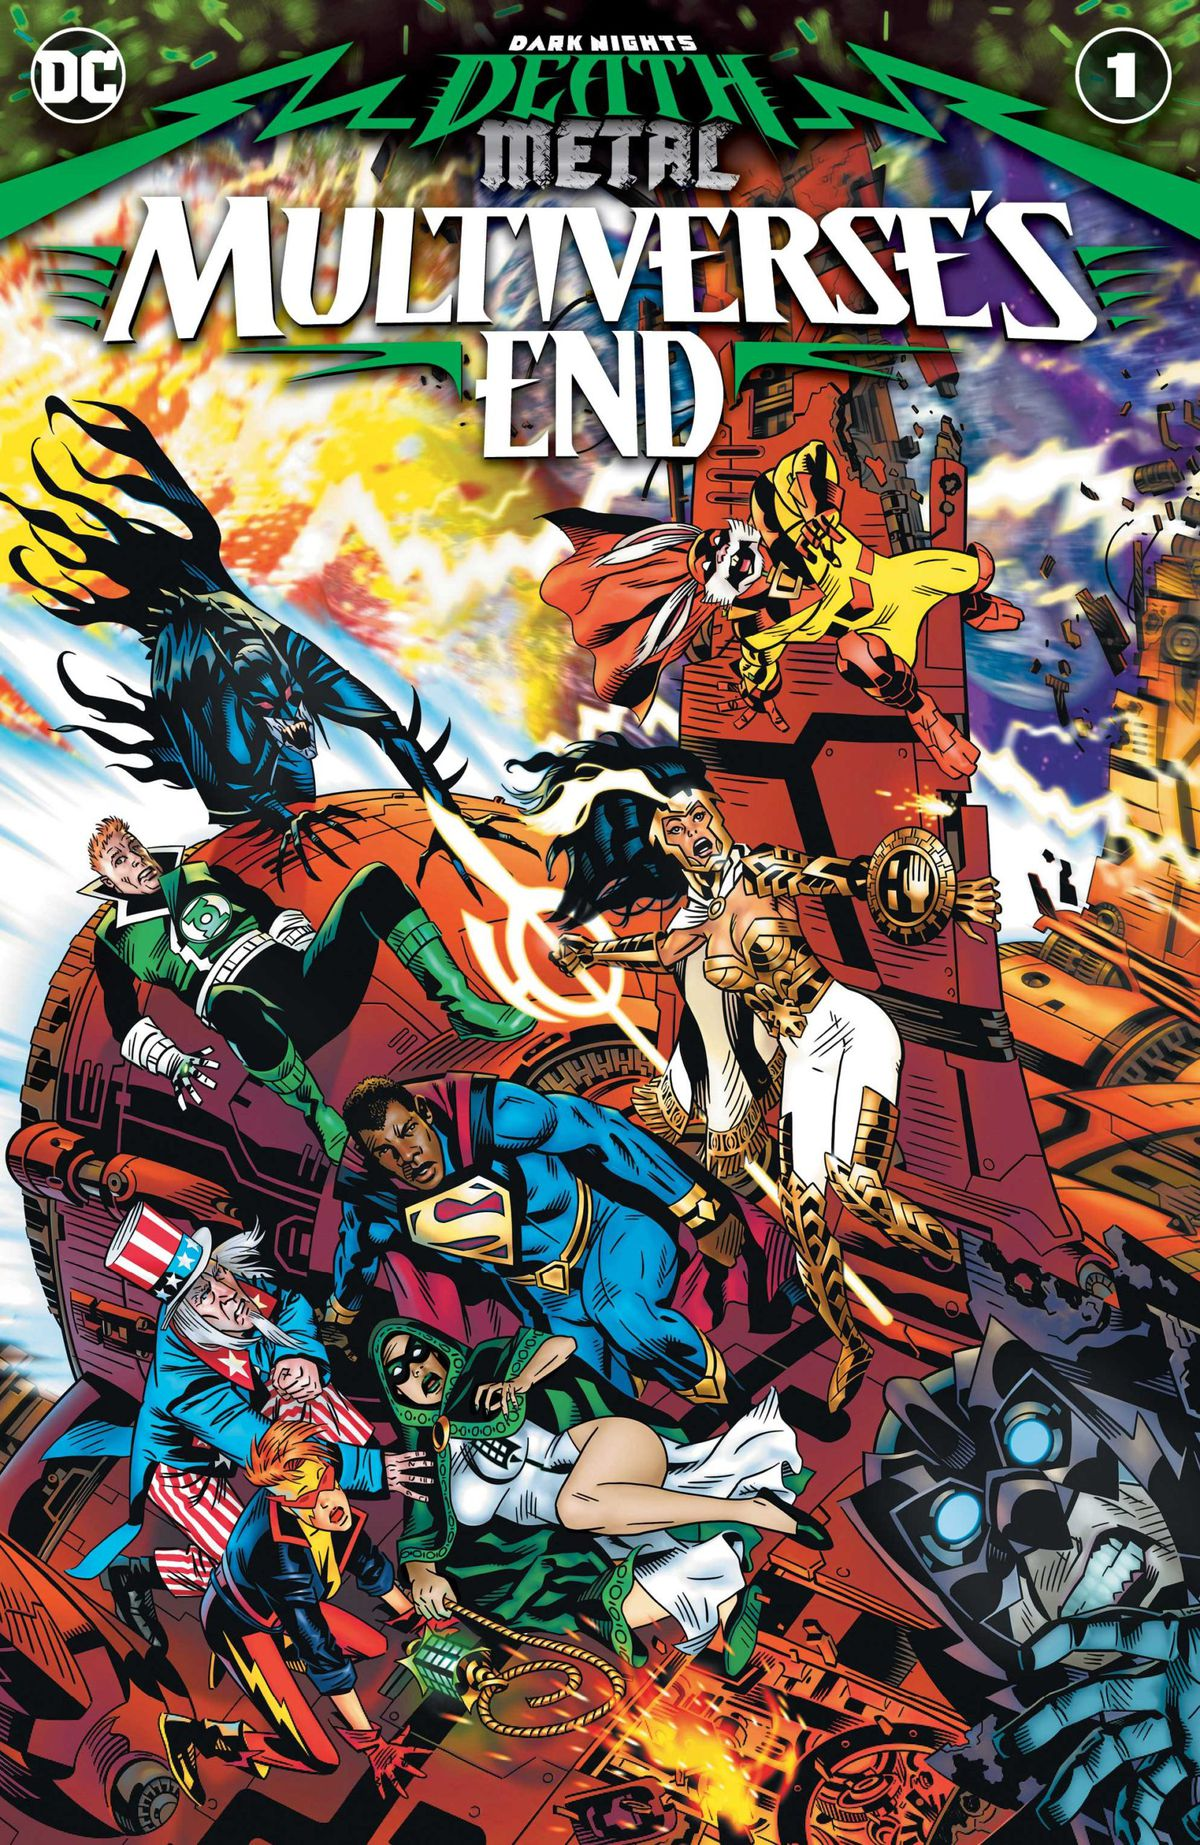 President Superman, Captain Carrot, Guy Gardner, Uncle Sam, Owlman, Vampire Batman and more cling to the side of a structure for their lives, on the cover of Dark Nights: Death Metal Multiverse's End, DC Comics (2020).